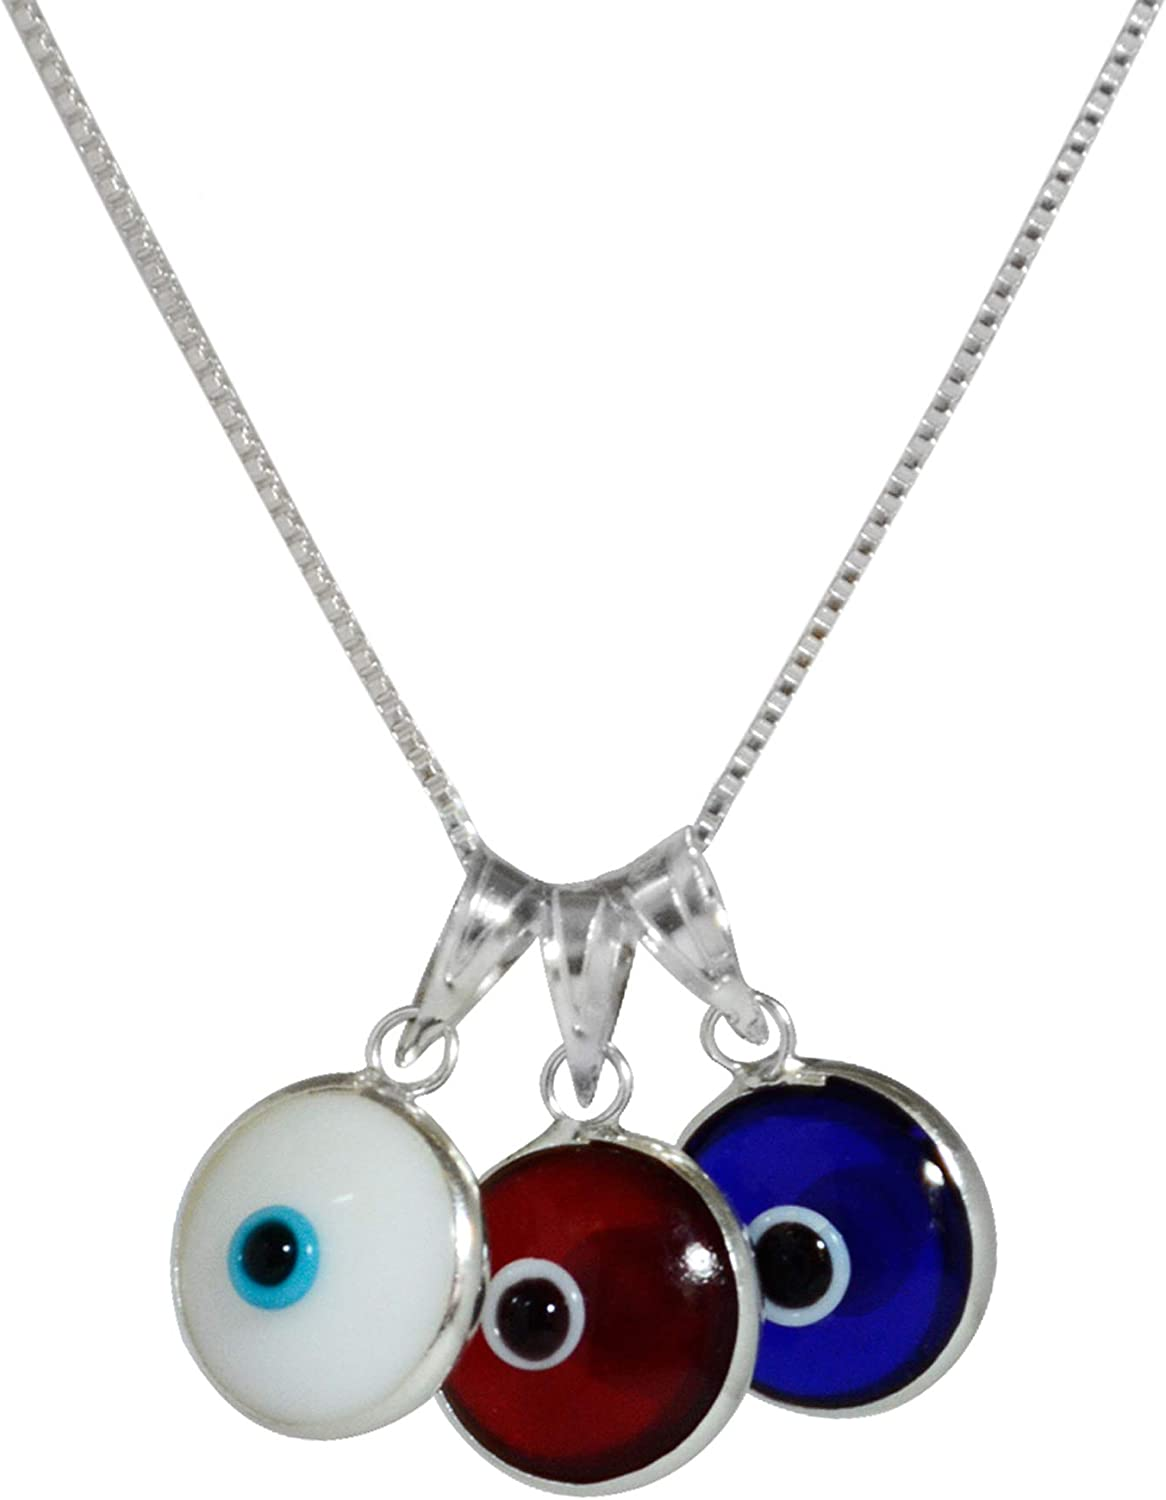 White Sterling Silver Charm Pendant Red Blue 25 mm 23